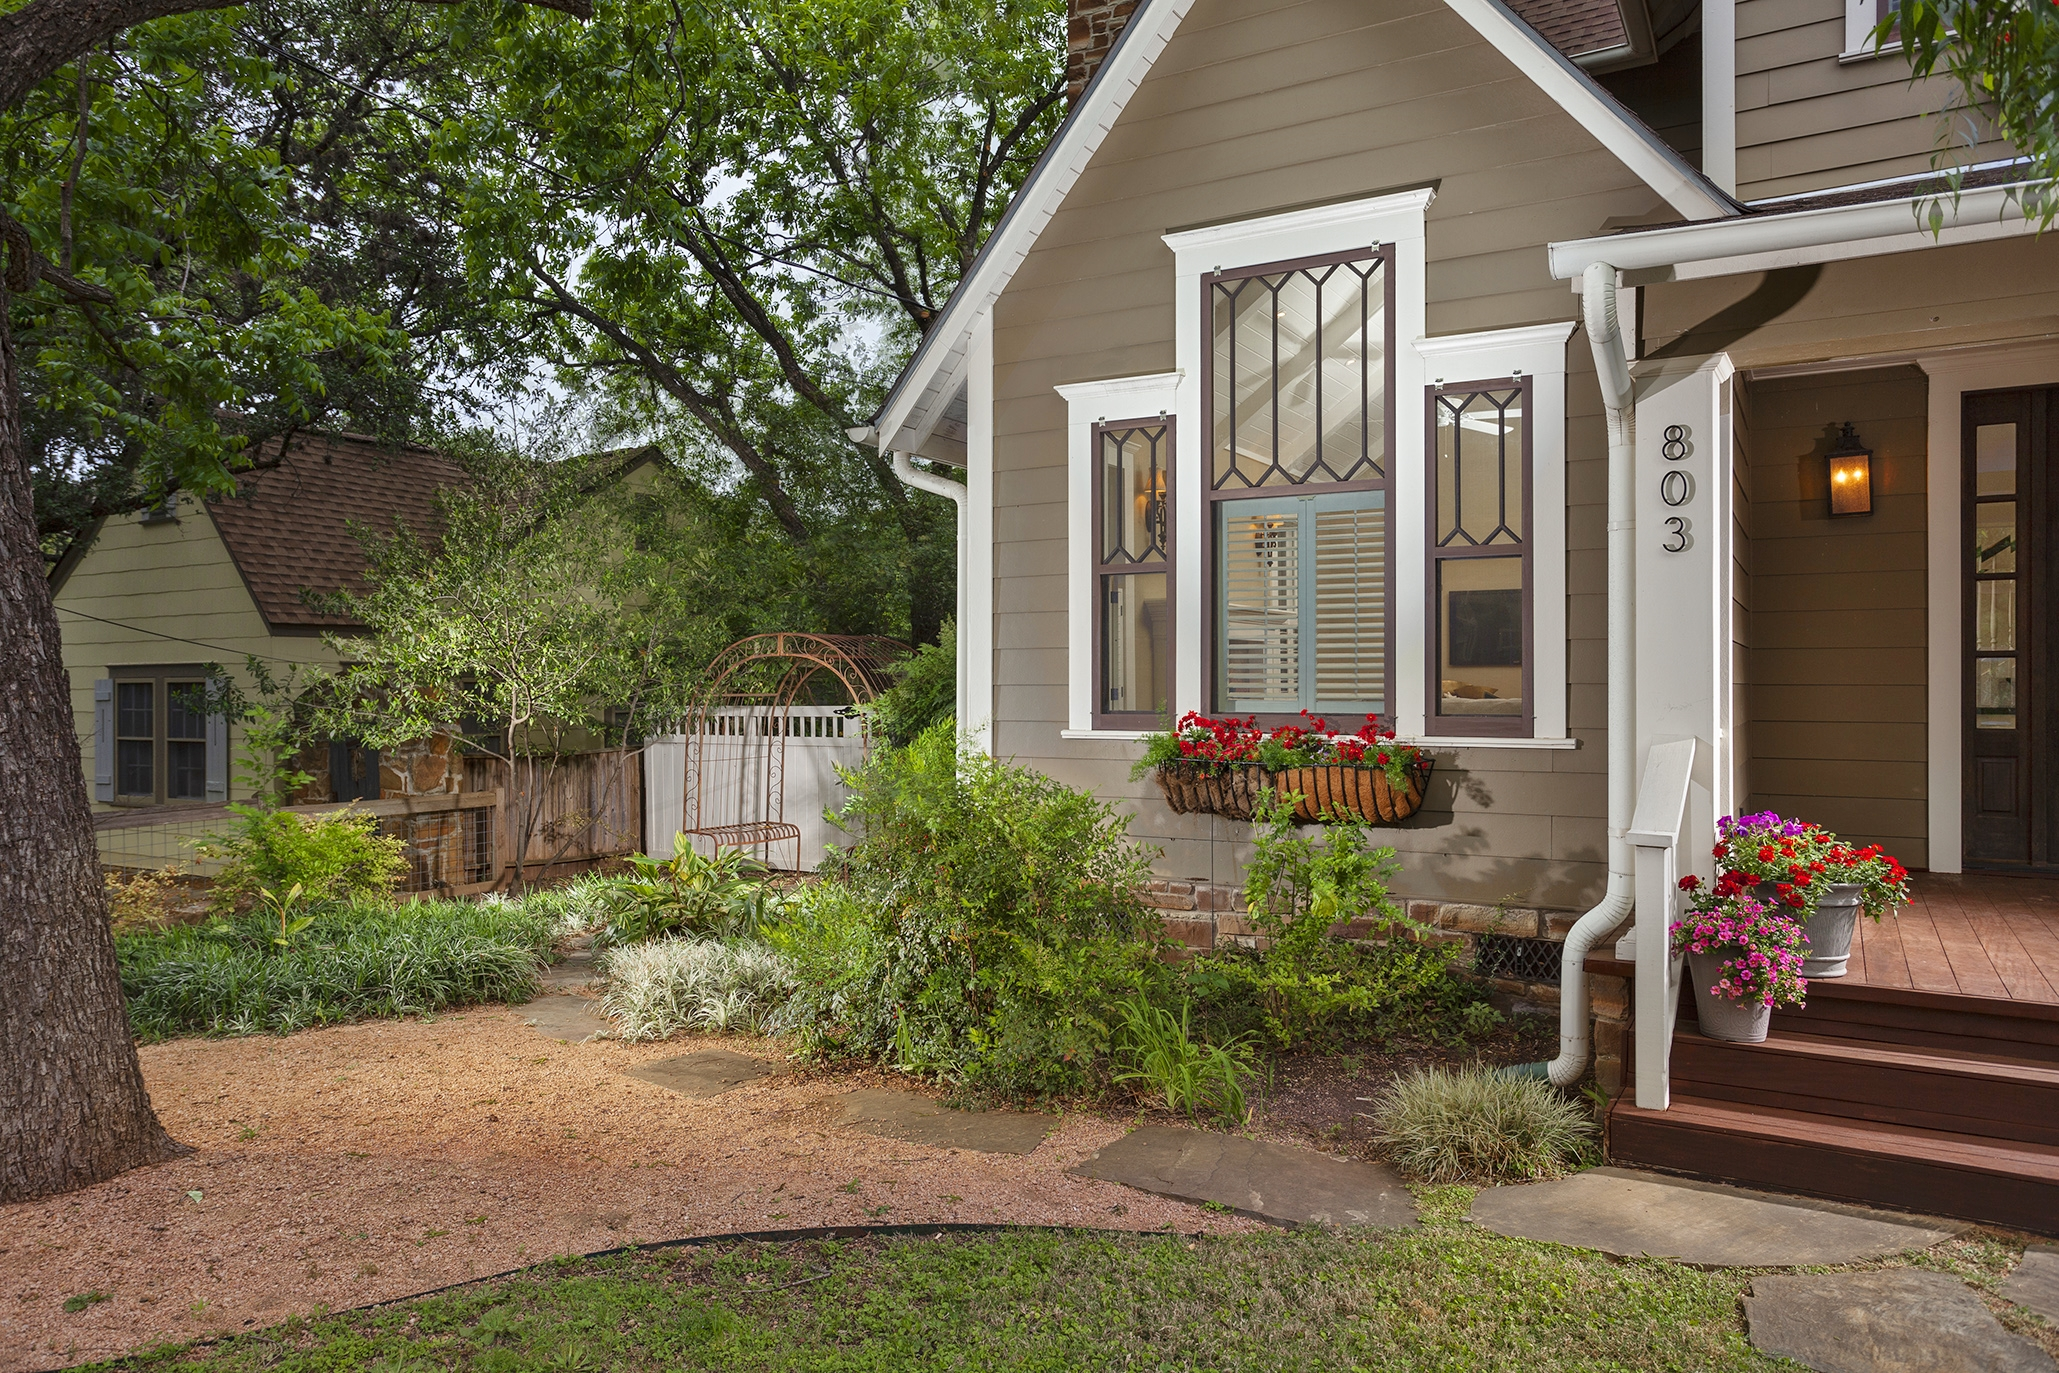 Storybook home for sale in the heart of Zilker in Austin, Texas